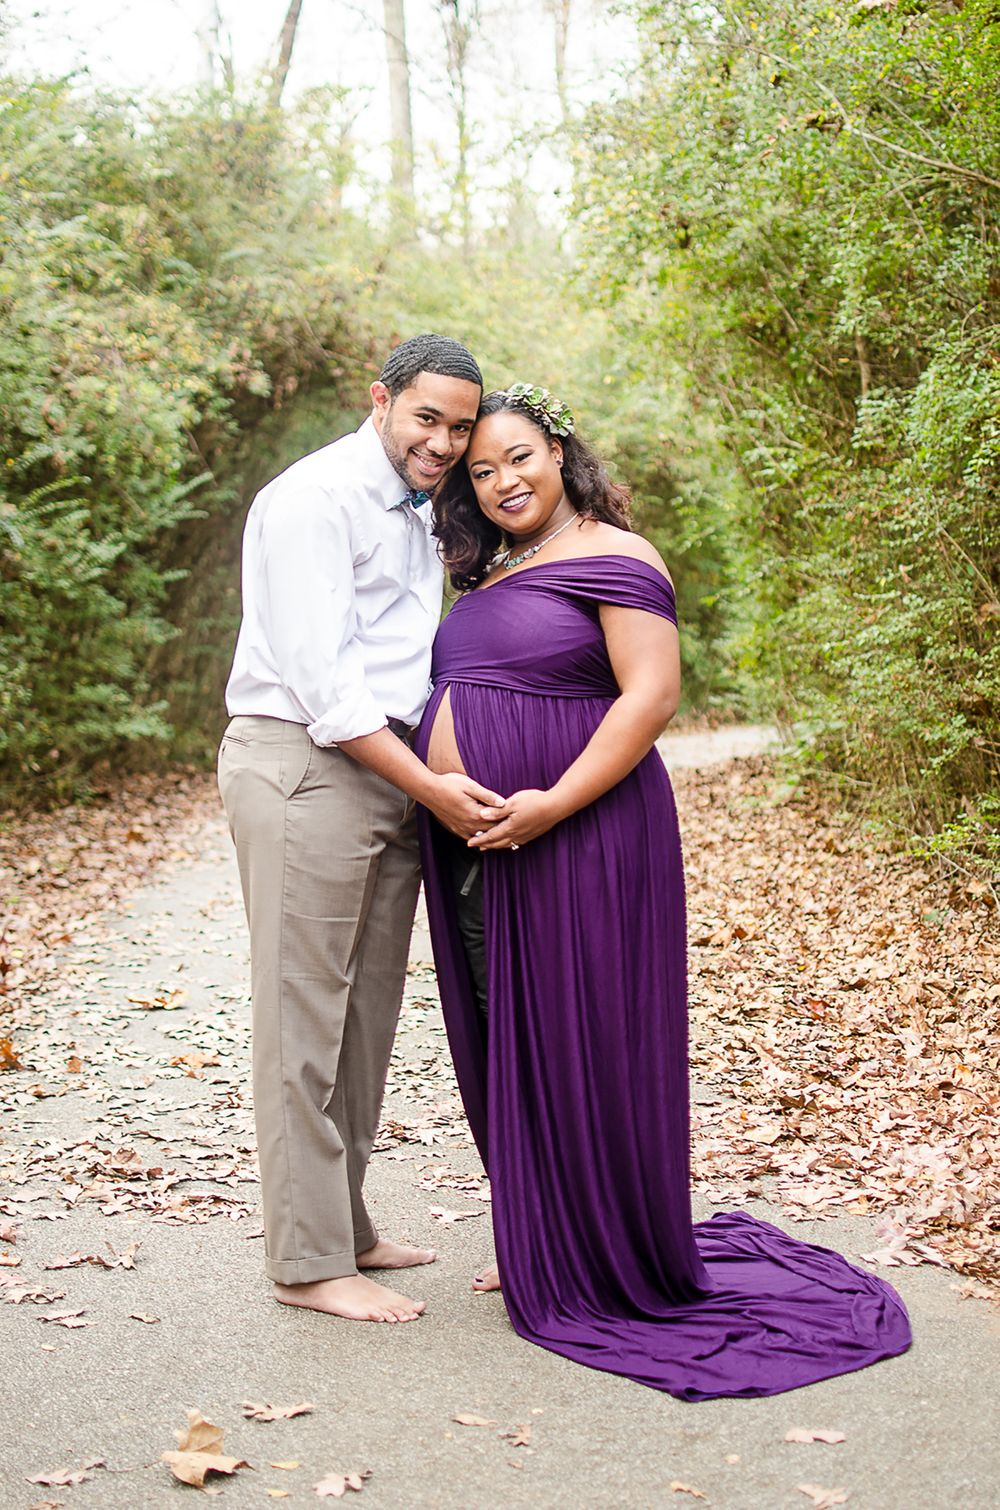 Maternity photography sessions in Augusta Georgia and North Augusta SC